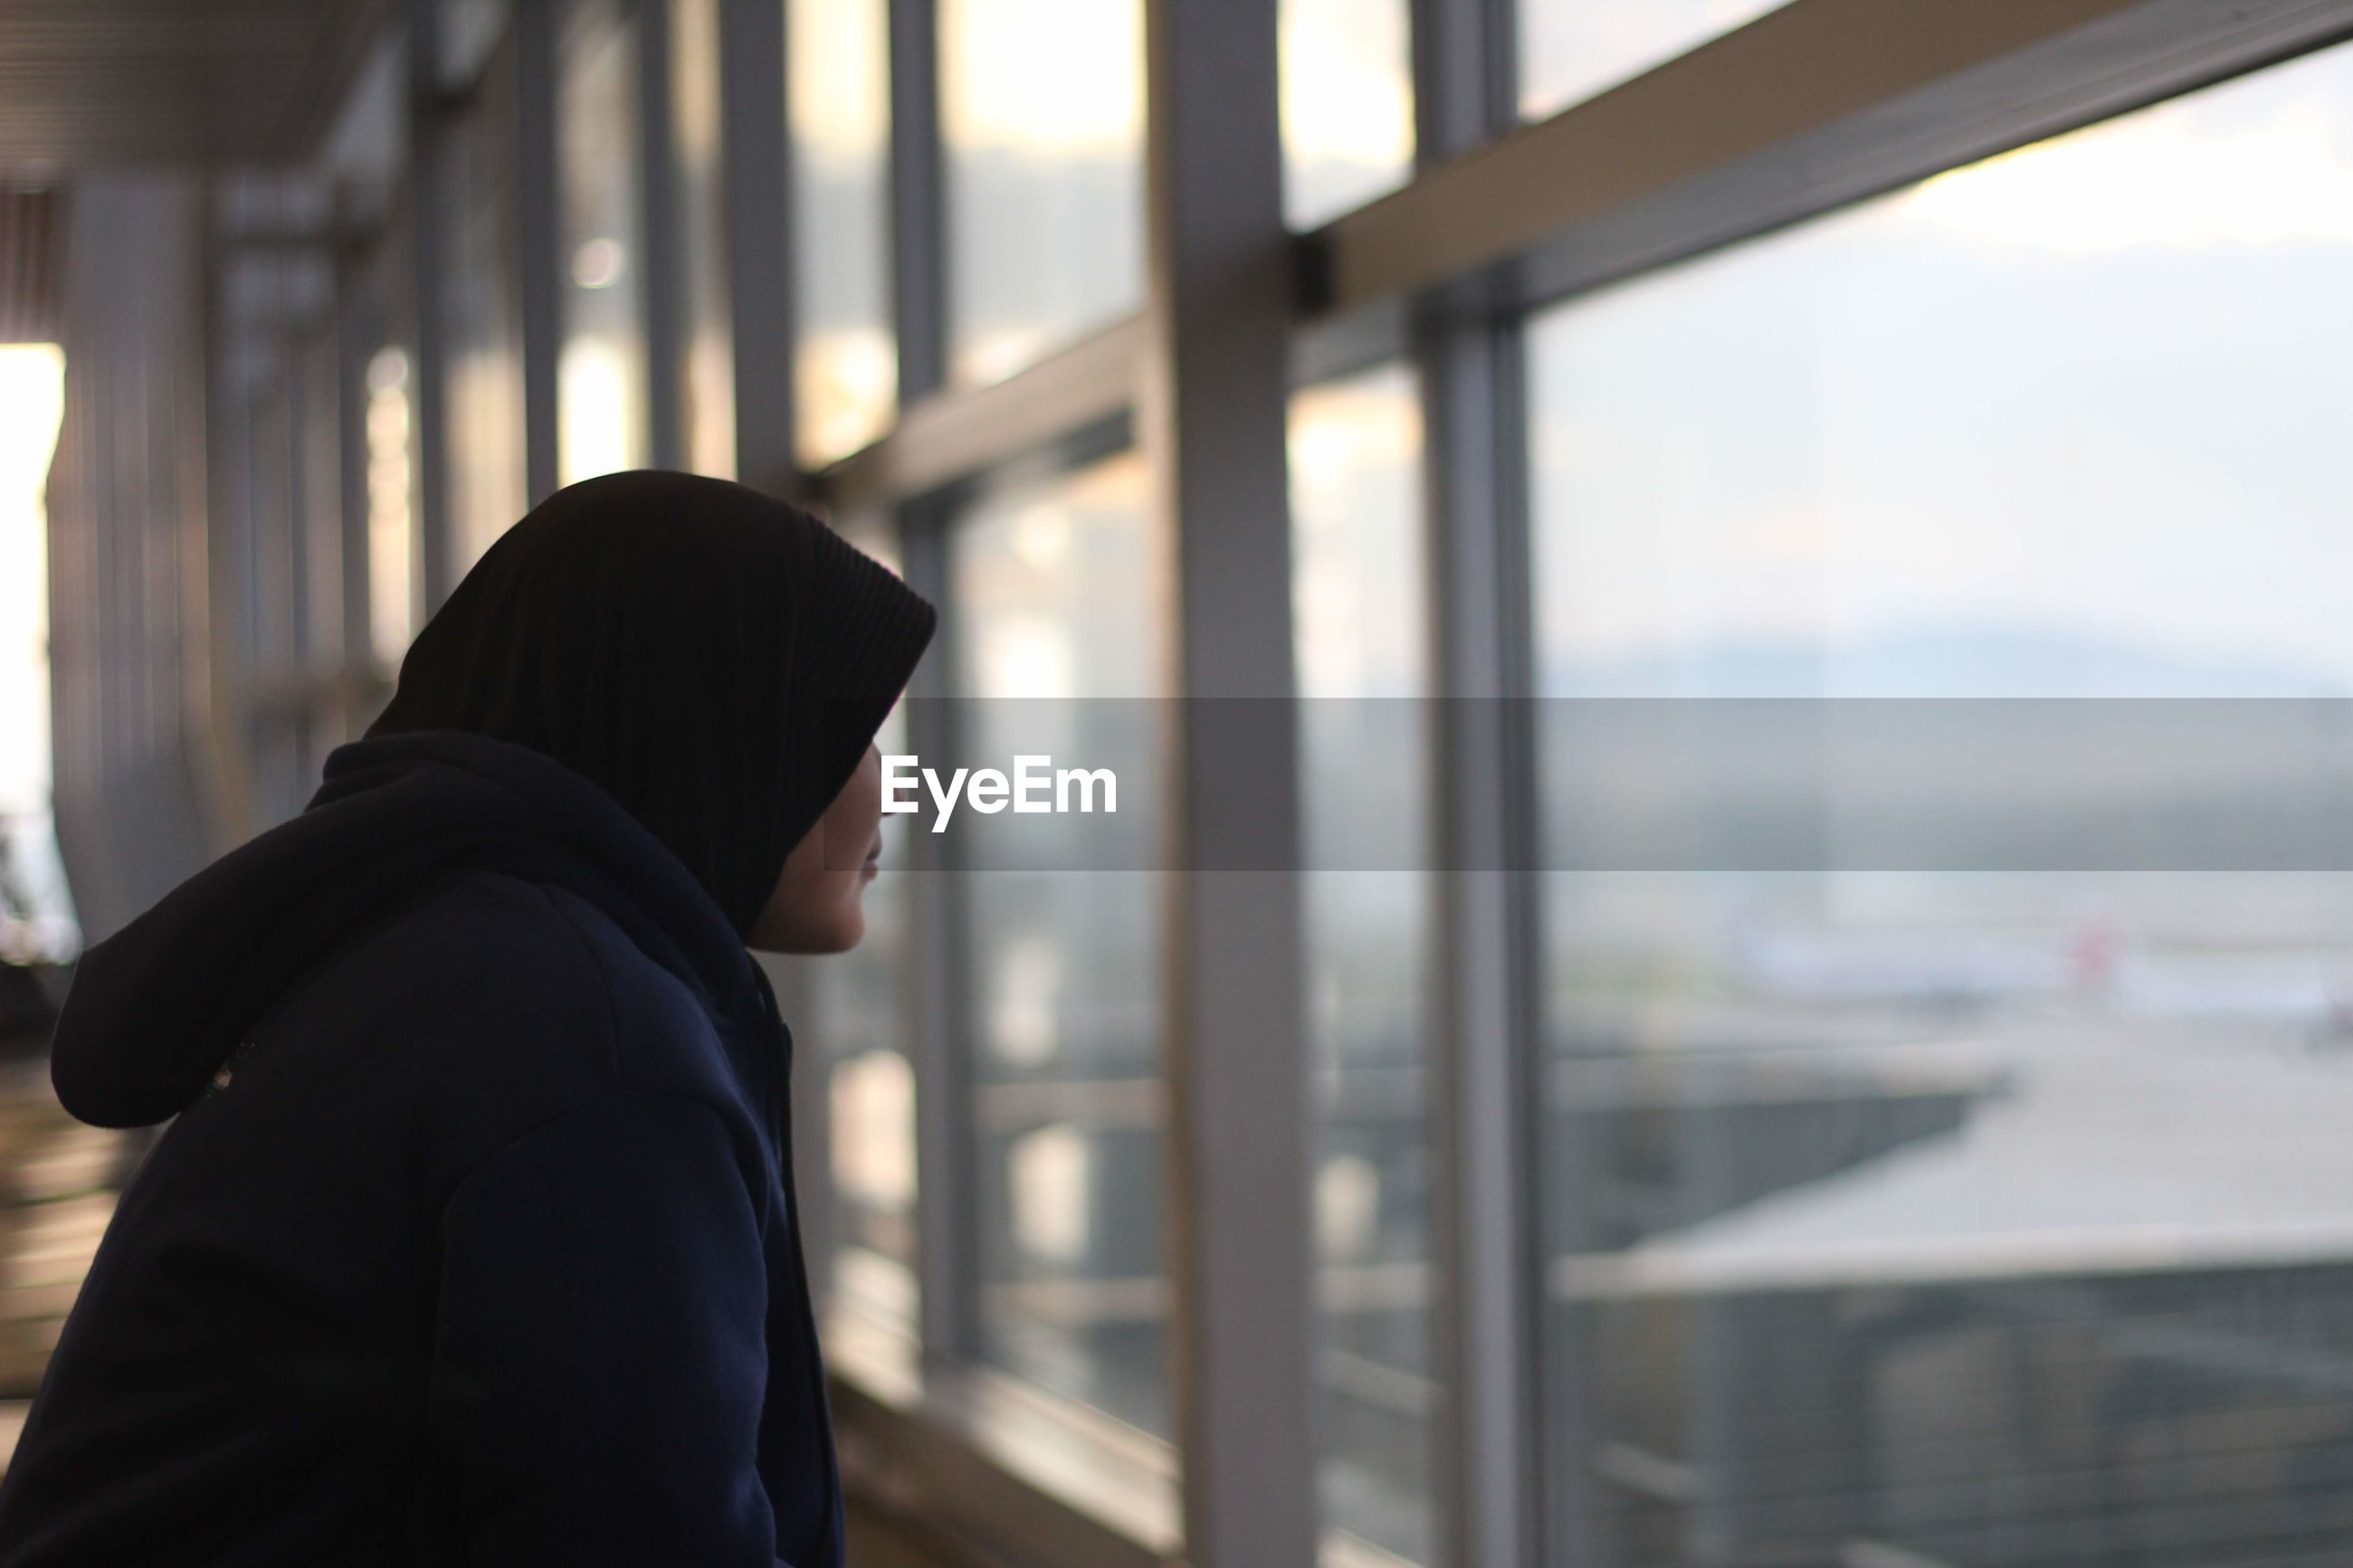 Woman wearing hijab while looking through window at airport